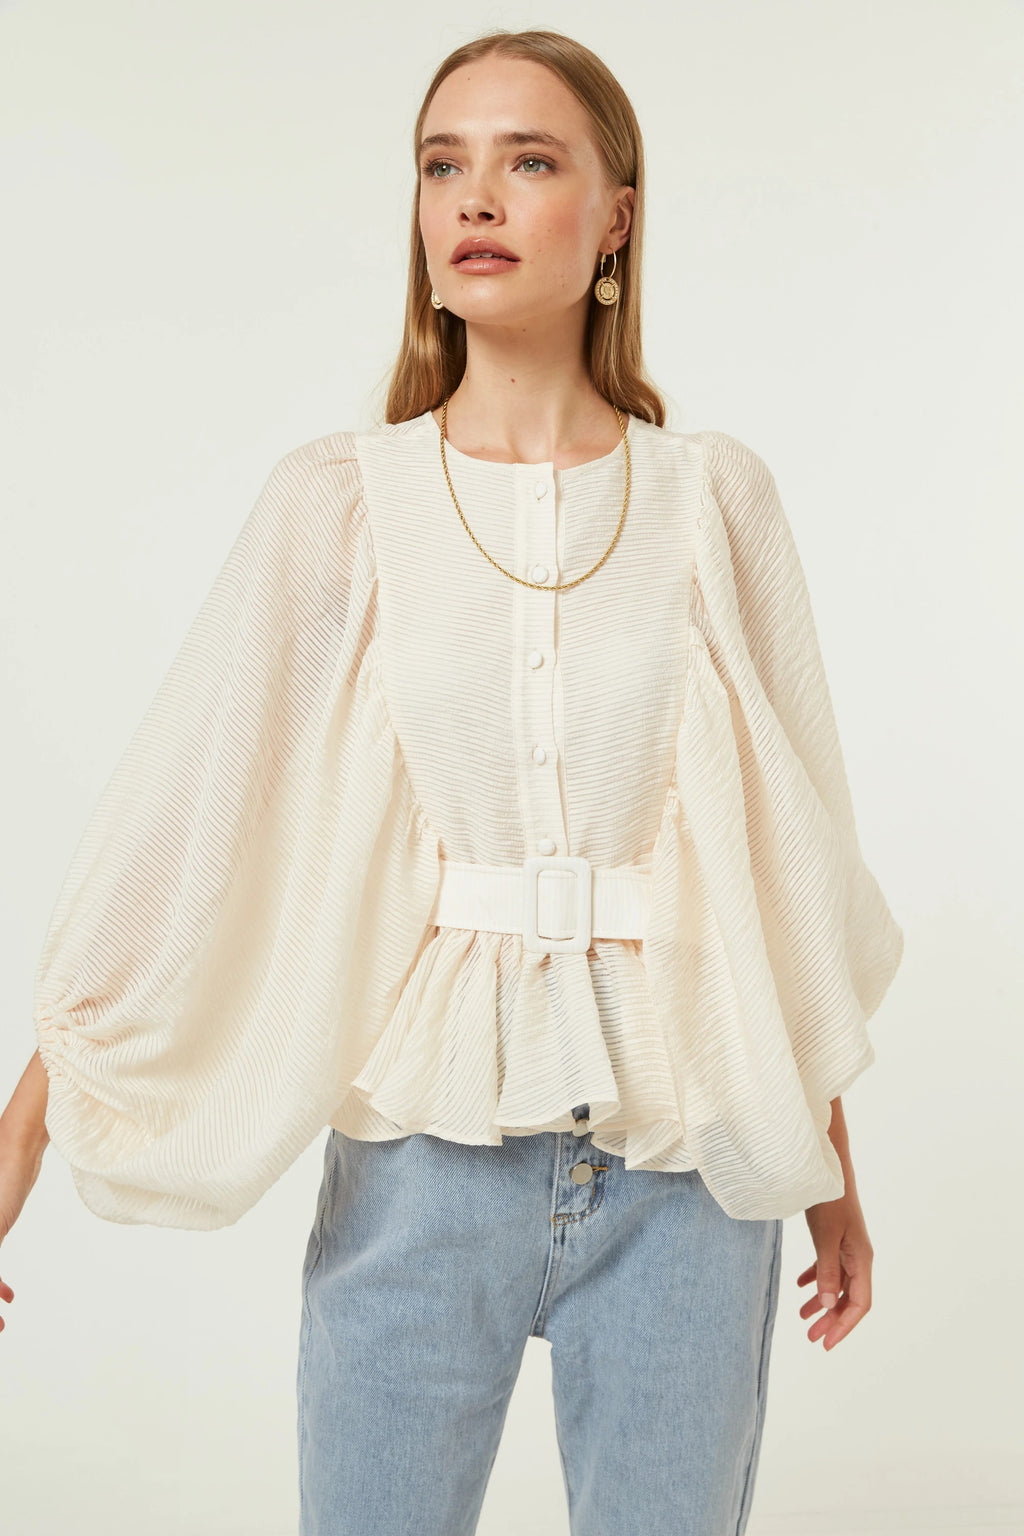 Jovonna London light yellow round neck balloon sleeved blouse with full length sleeves with elastic, featuring peplum detail  with waist belt.